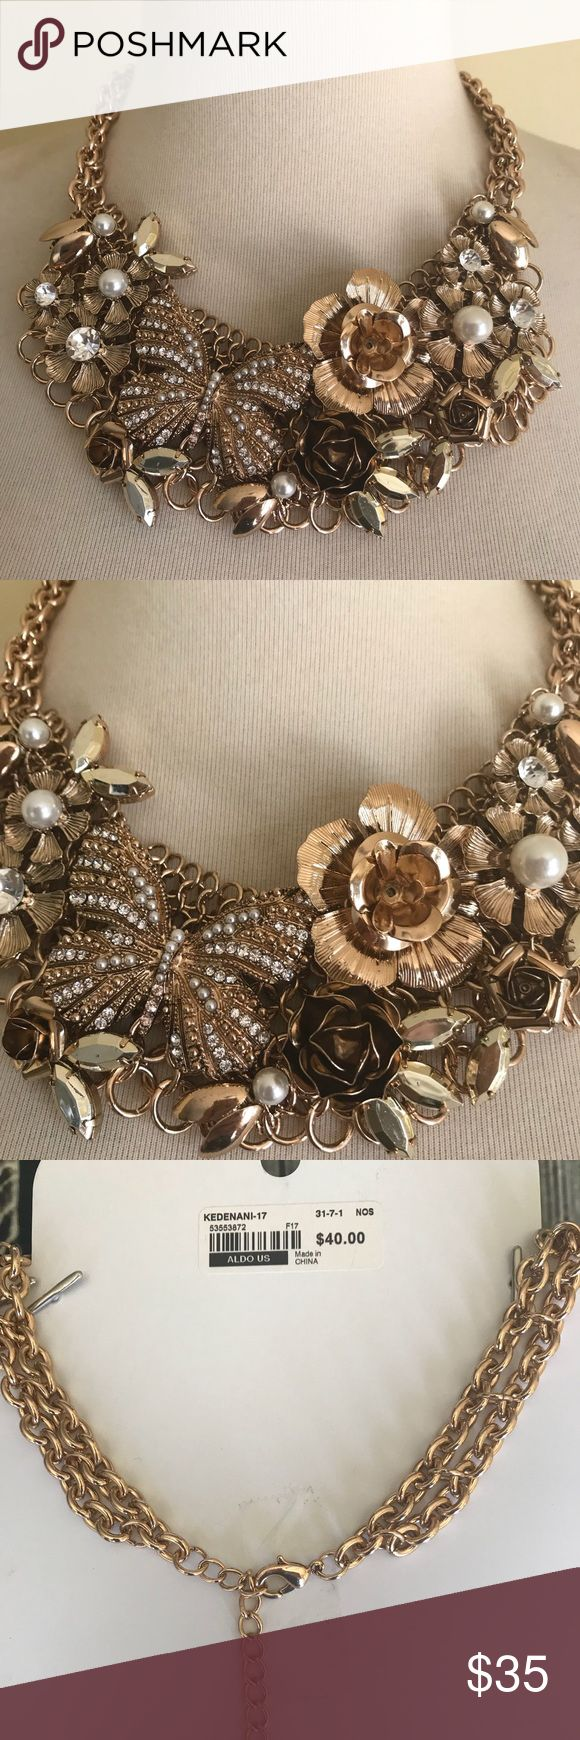 🦋Aldo Statement Necklace Bib Floral Butterfly🦋 Aldo Statement Necklace. Bib . Gold tone. New with Tags. Adjustable lobster clasp closure . Floral and butterfly theme . Aldo Jewelry Necklaces